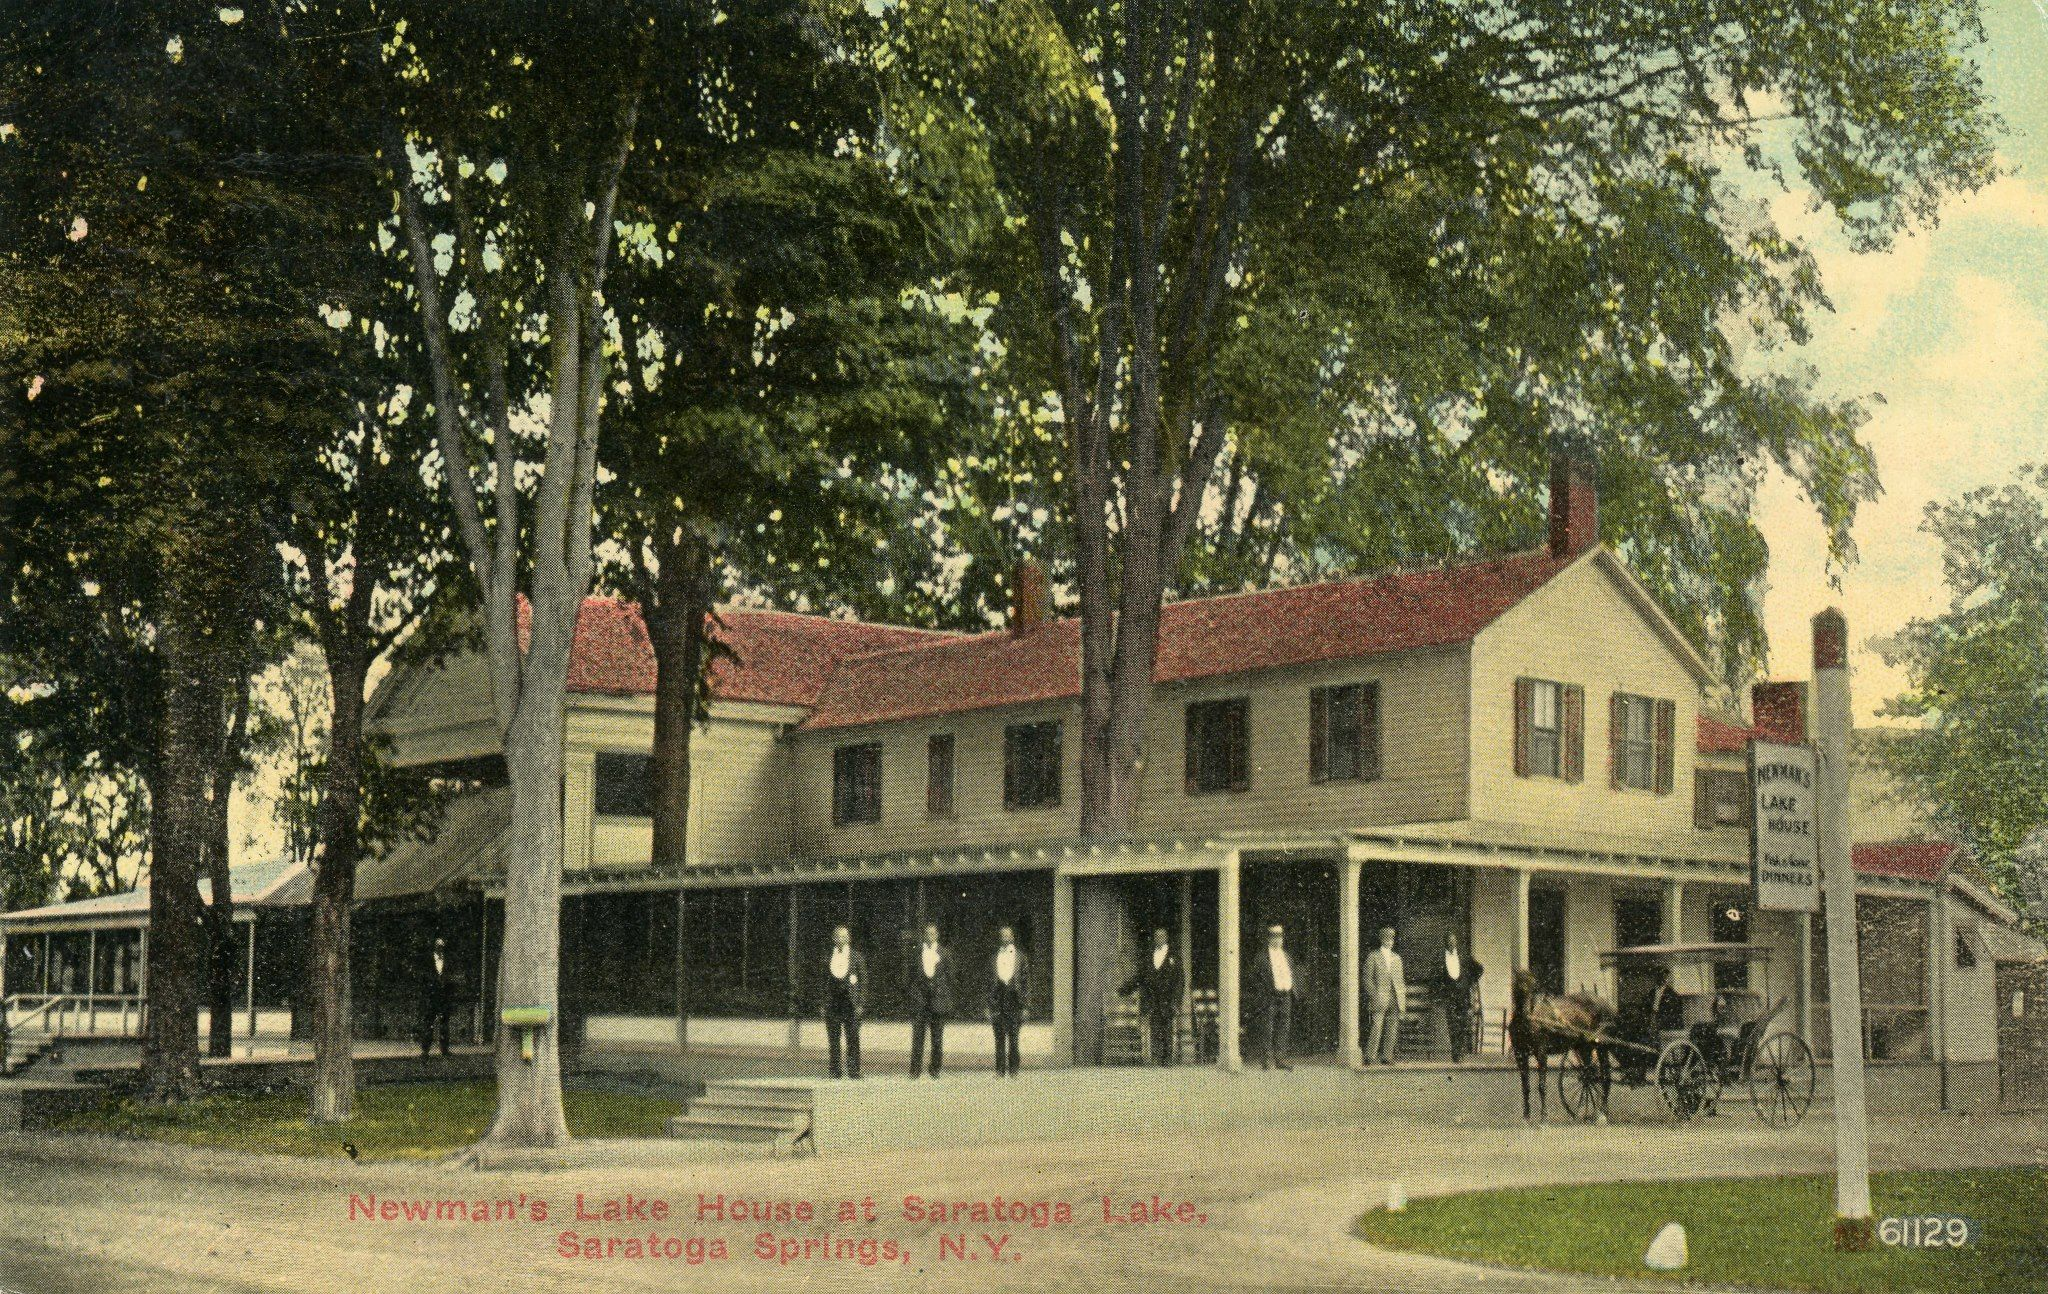 Newman\'s Lake House on Saratoga Lake. Post Card postmarked 10 July ...